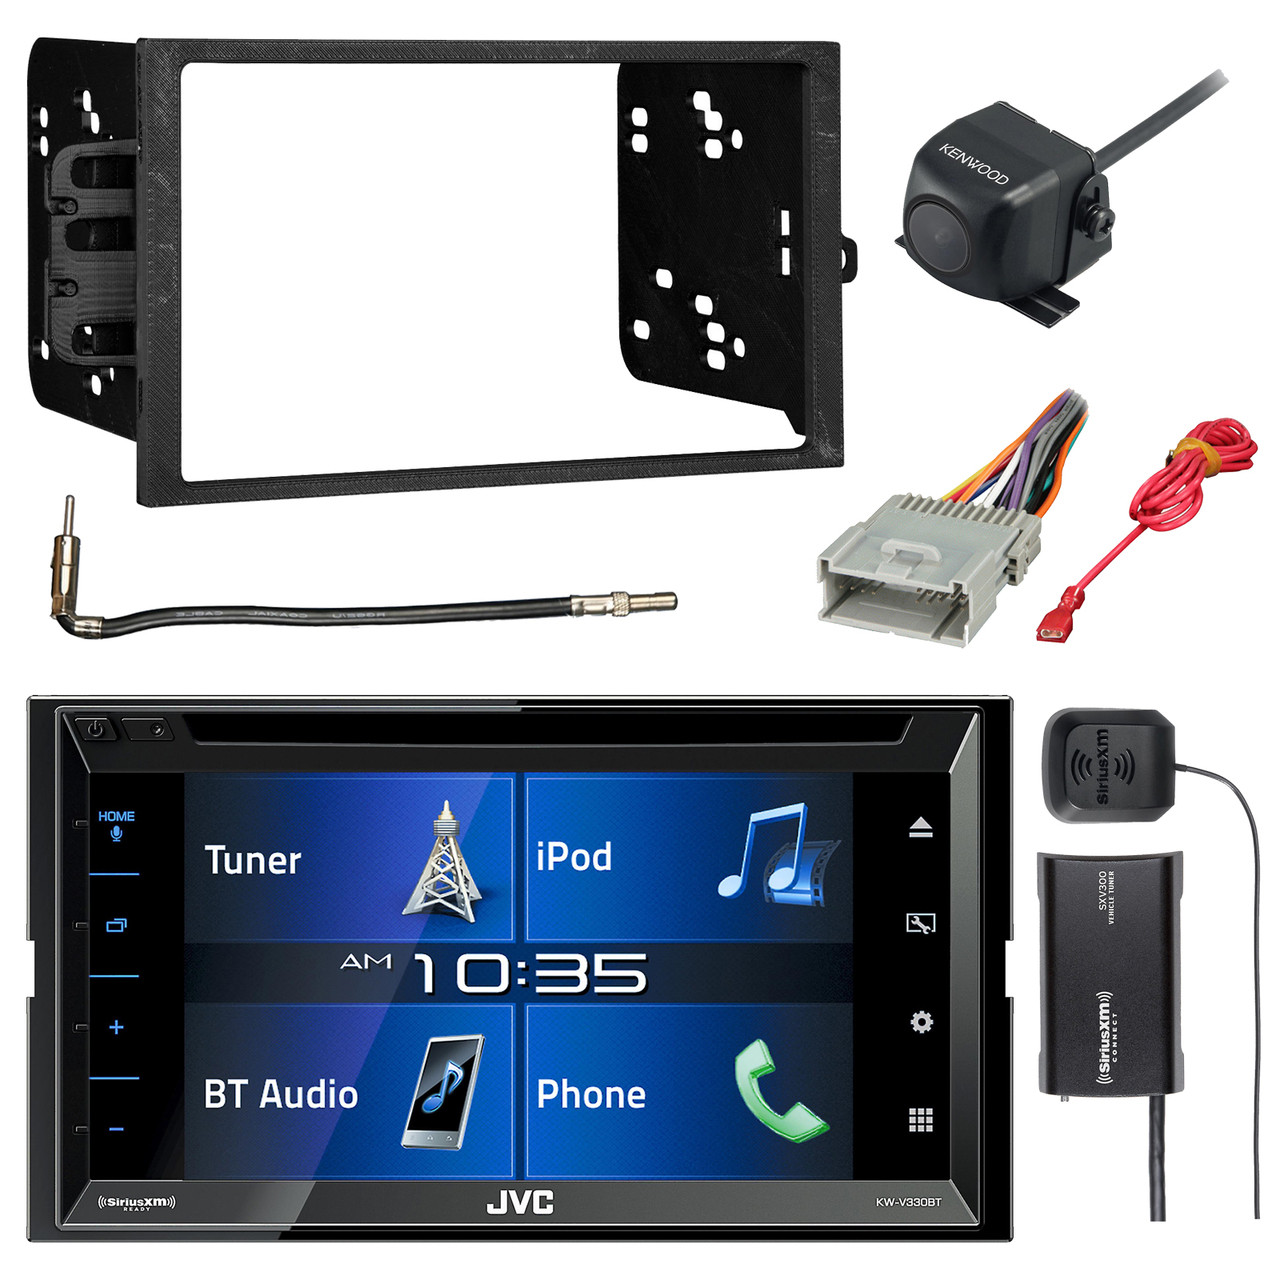 small resolution of jvc kw v330bt 6 8 double din bluetooth dvd cd am fm stereo siriusxm satellite vehicle tuner kit kenwood backup camera metra double din install dash kit